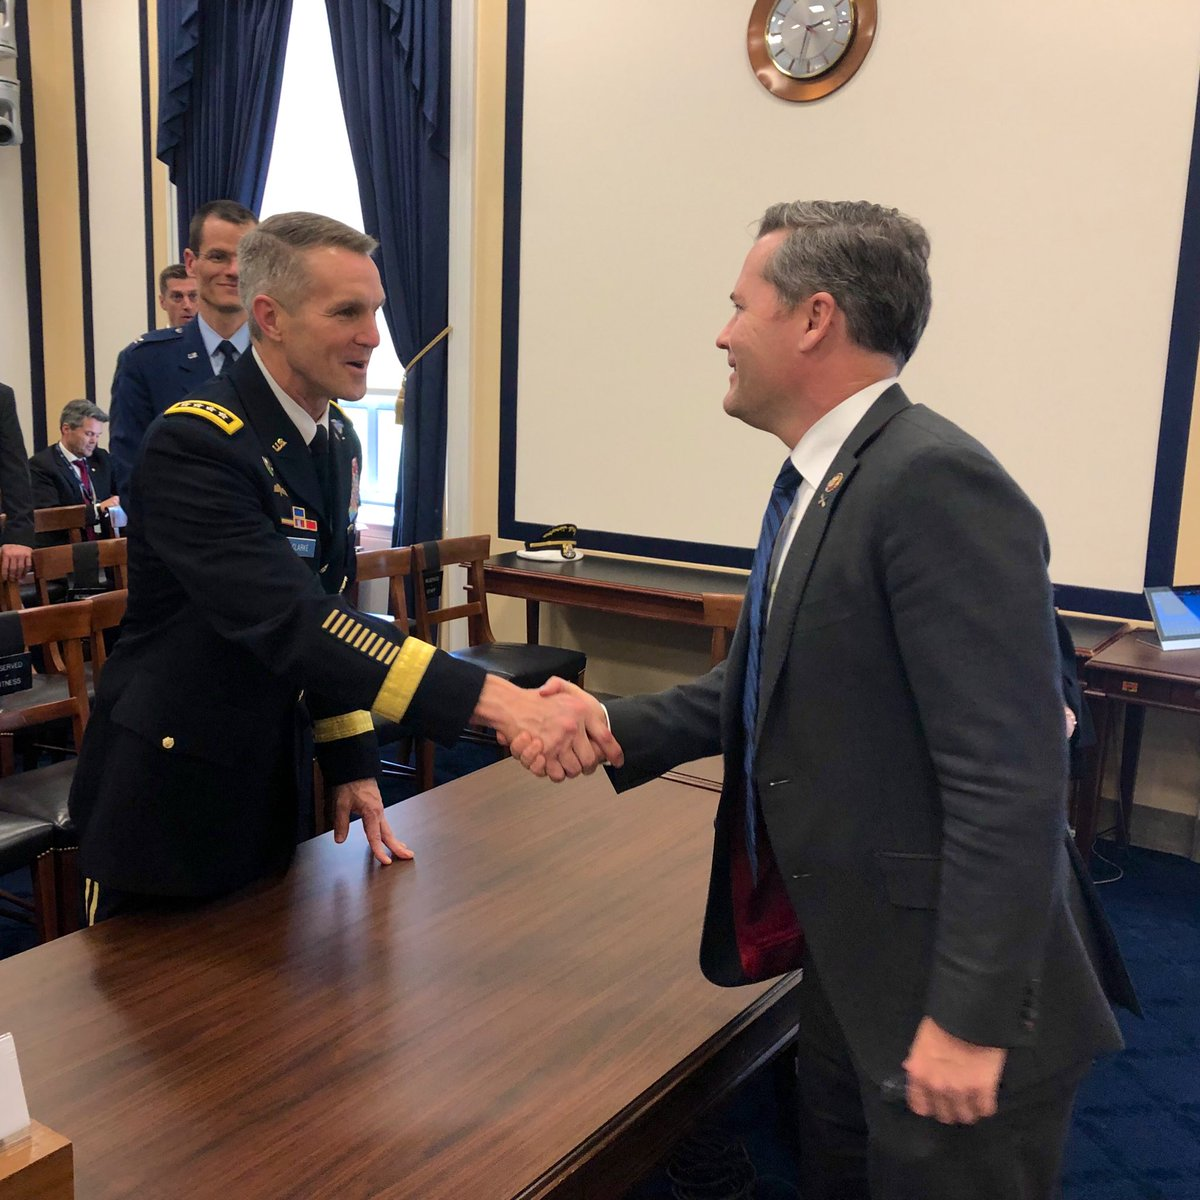 My time as a Green Beret means I know the resources our special operators need to complete their mission successfully & safely. Thank you to @USSOCOM Commander General Clarke & @DeptofDefense Deputy Assistant Secretary Mitchell for sharing with us at @HASCRepublicans today.